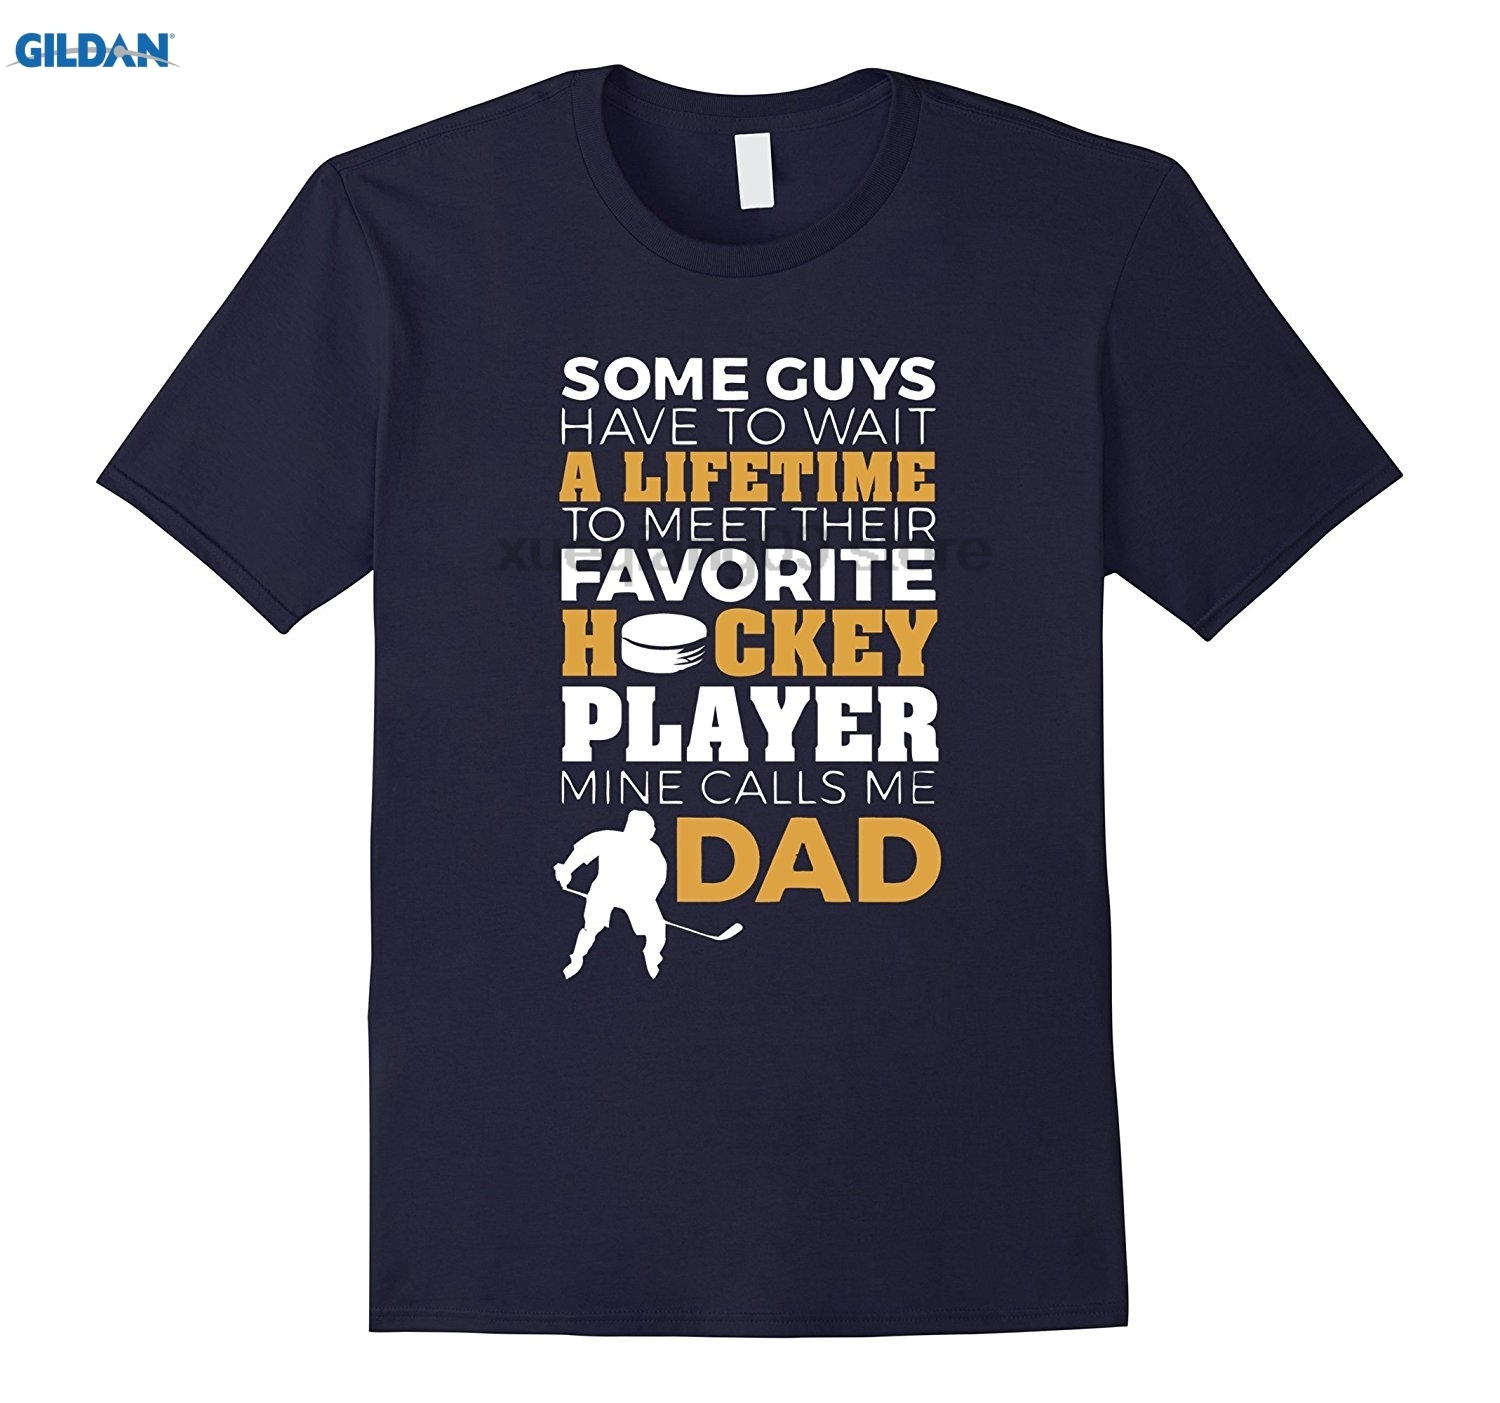 GILDAN Player Mine Calls Me Dad T Shirt Fathers Day Gifts